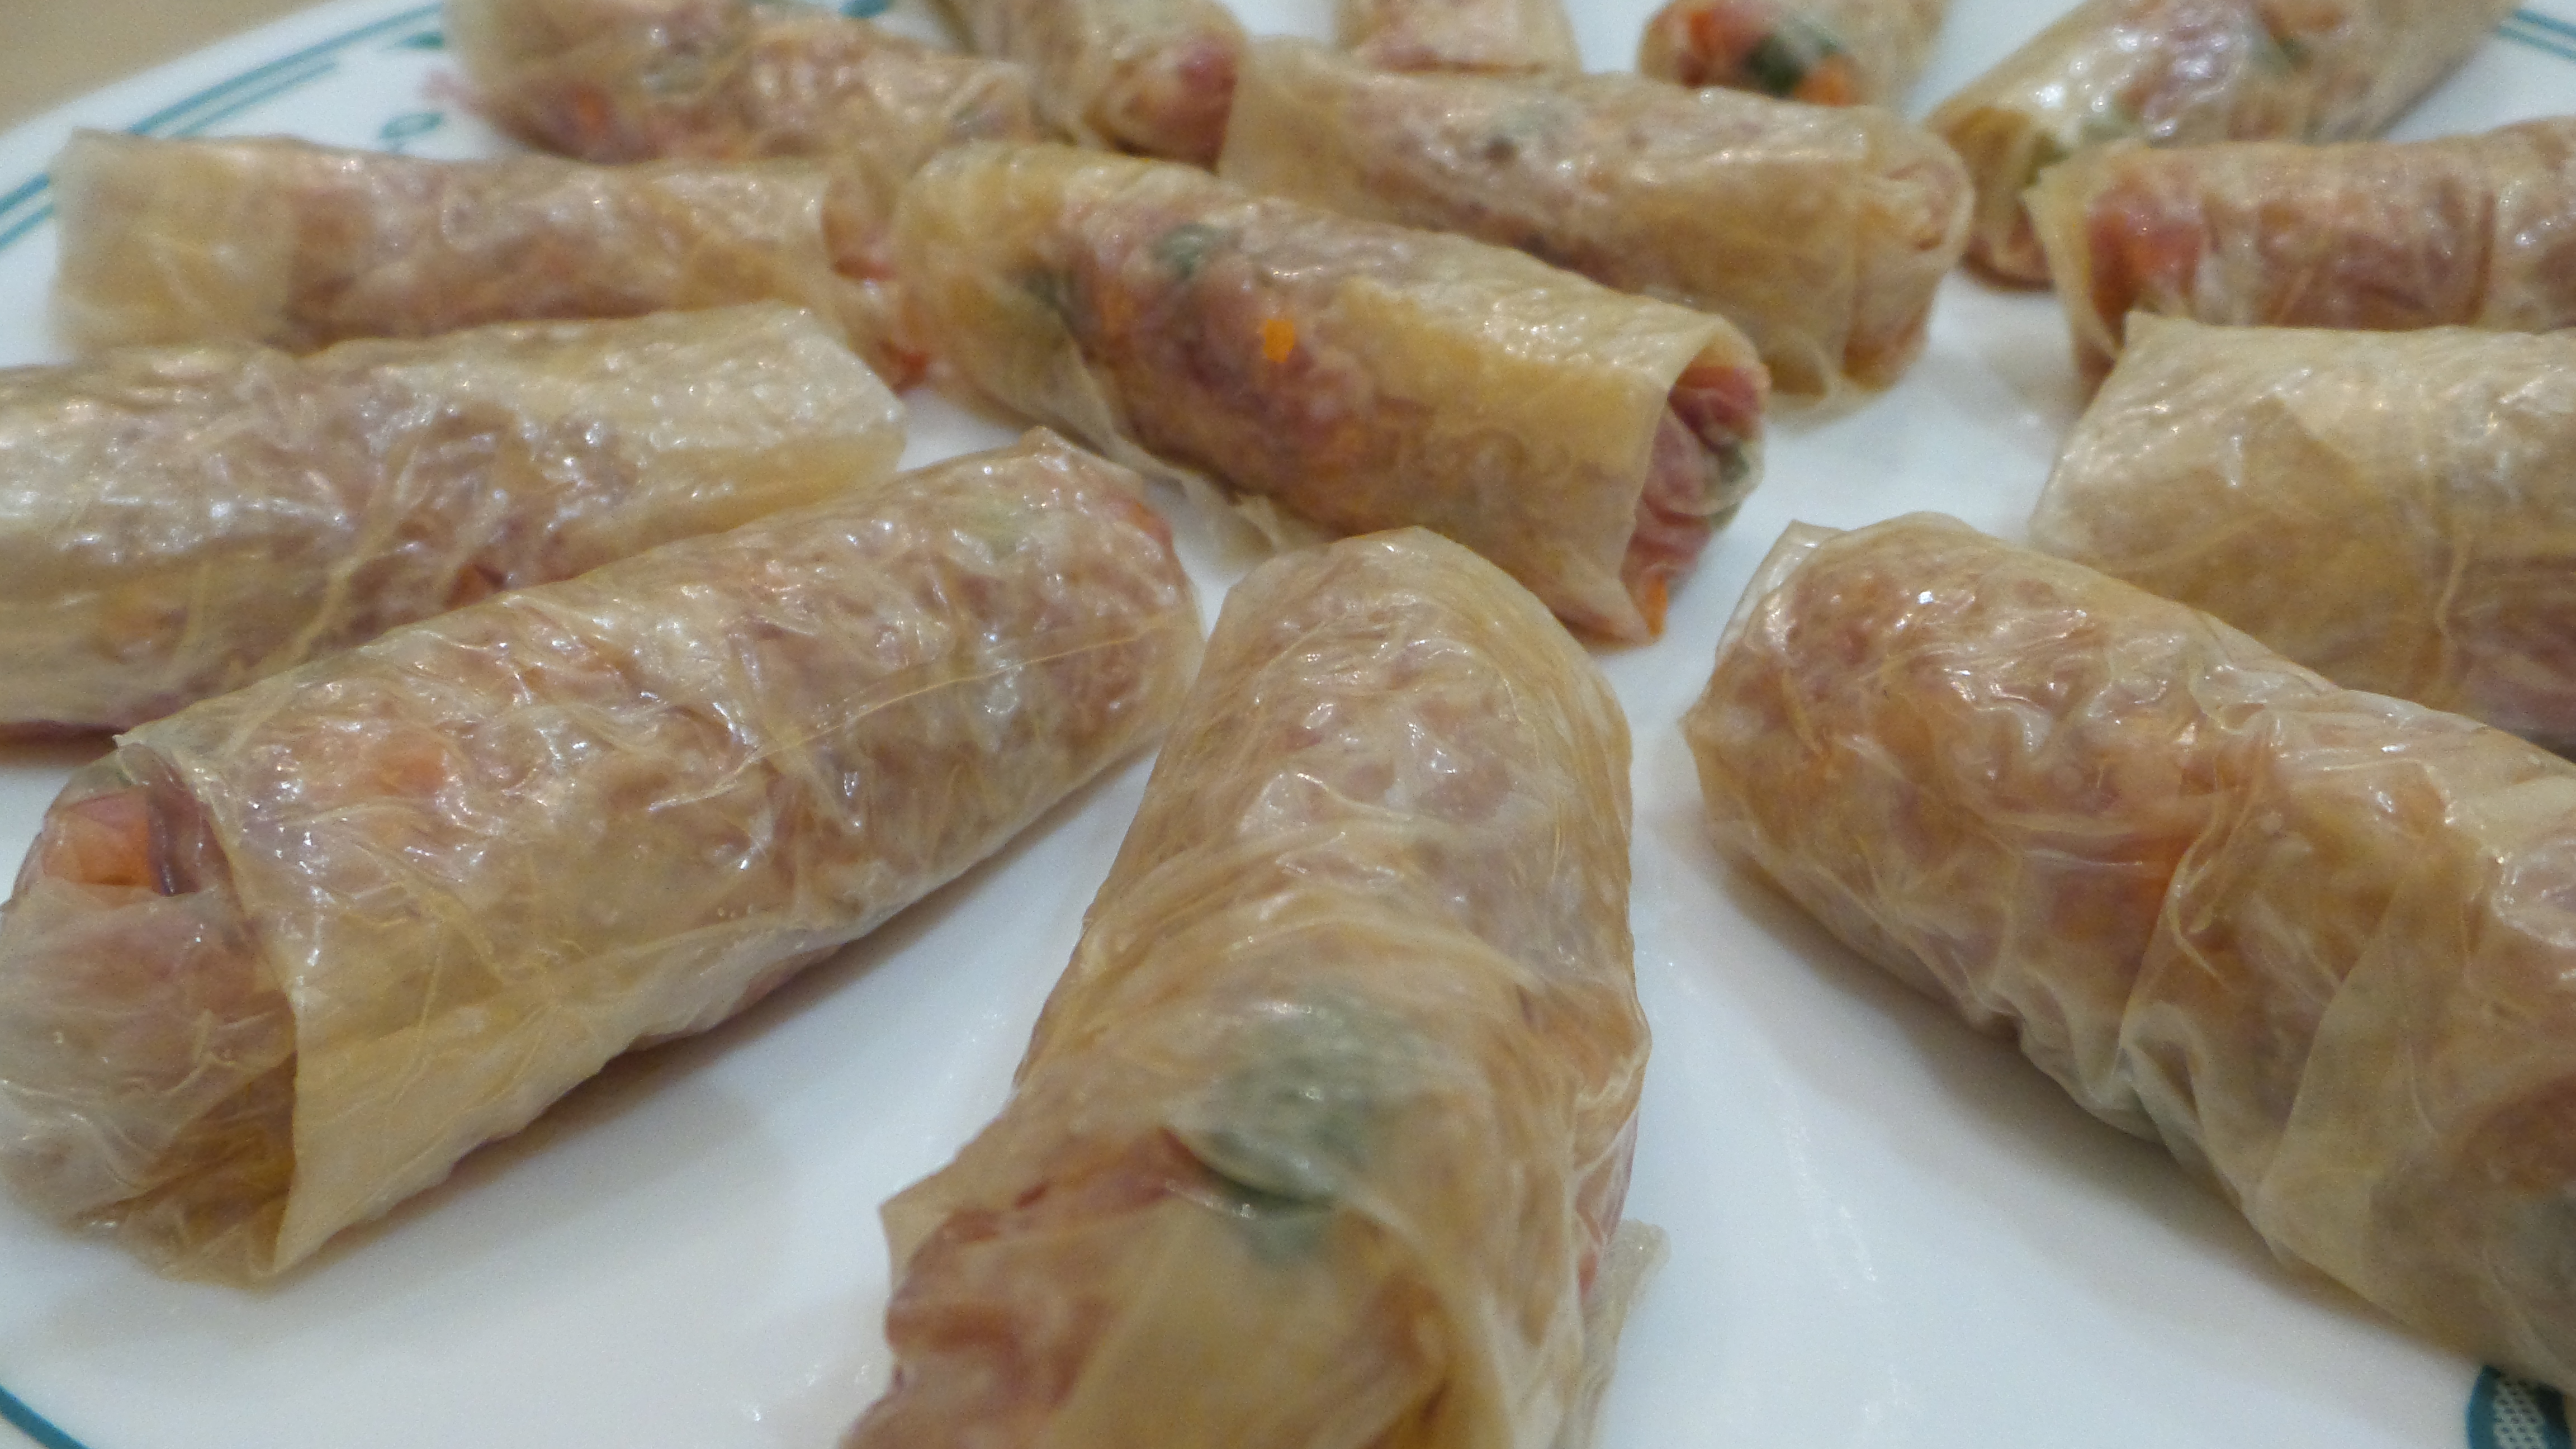 Ngor Hiang - wrapped